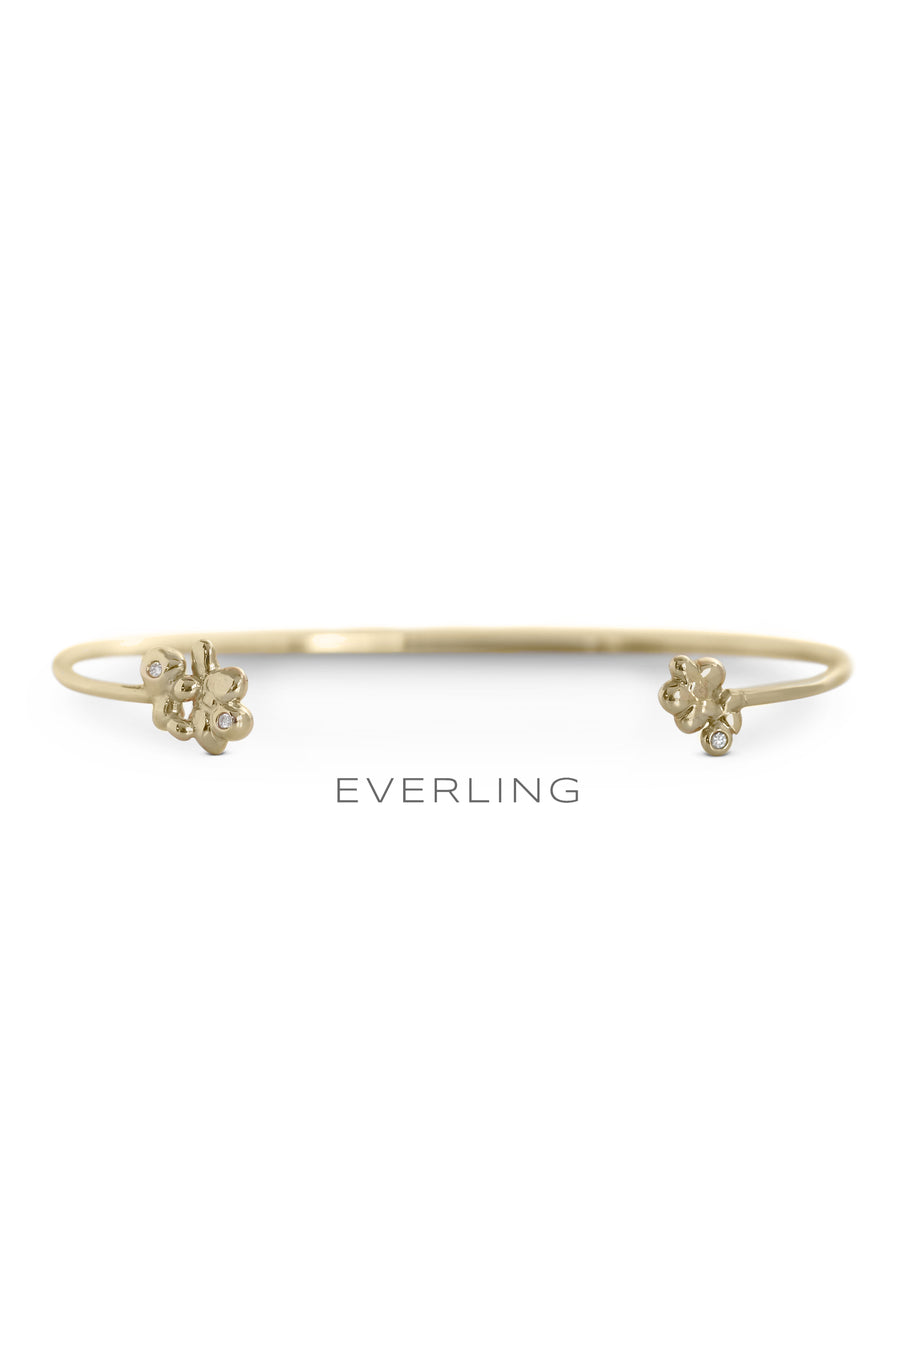 Recycled 14K Yellow Gold Bubble and Diamond Accent Cuff Bracelet. #designerjewelry www.everlingjewelry.com